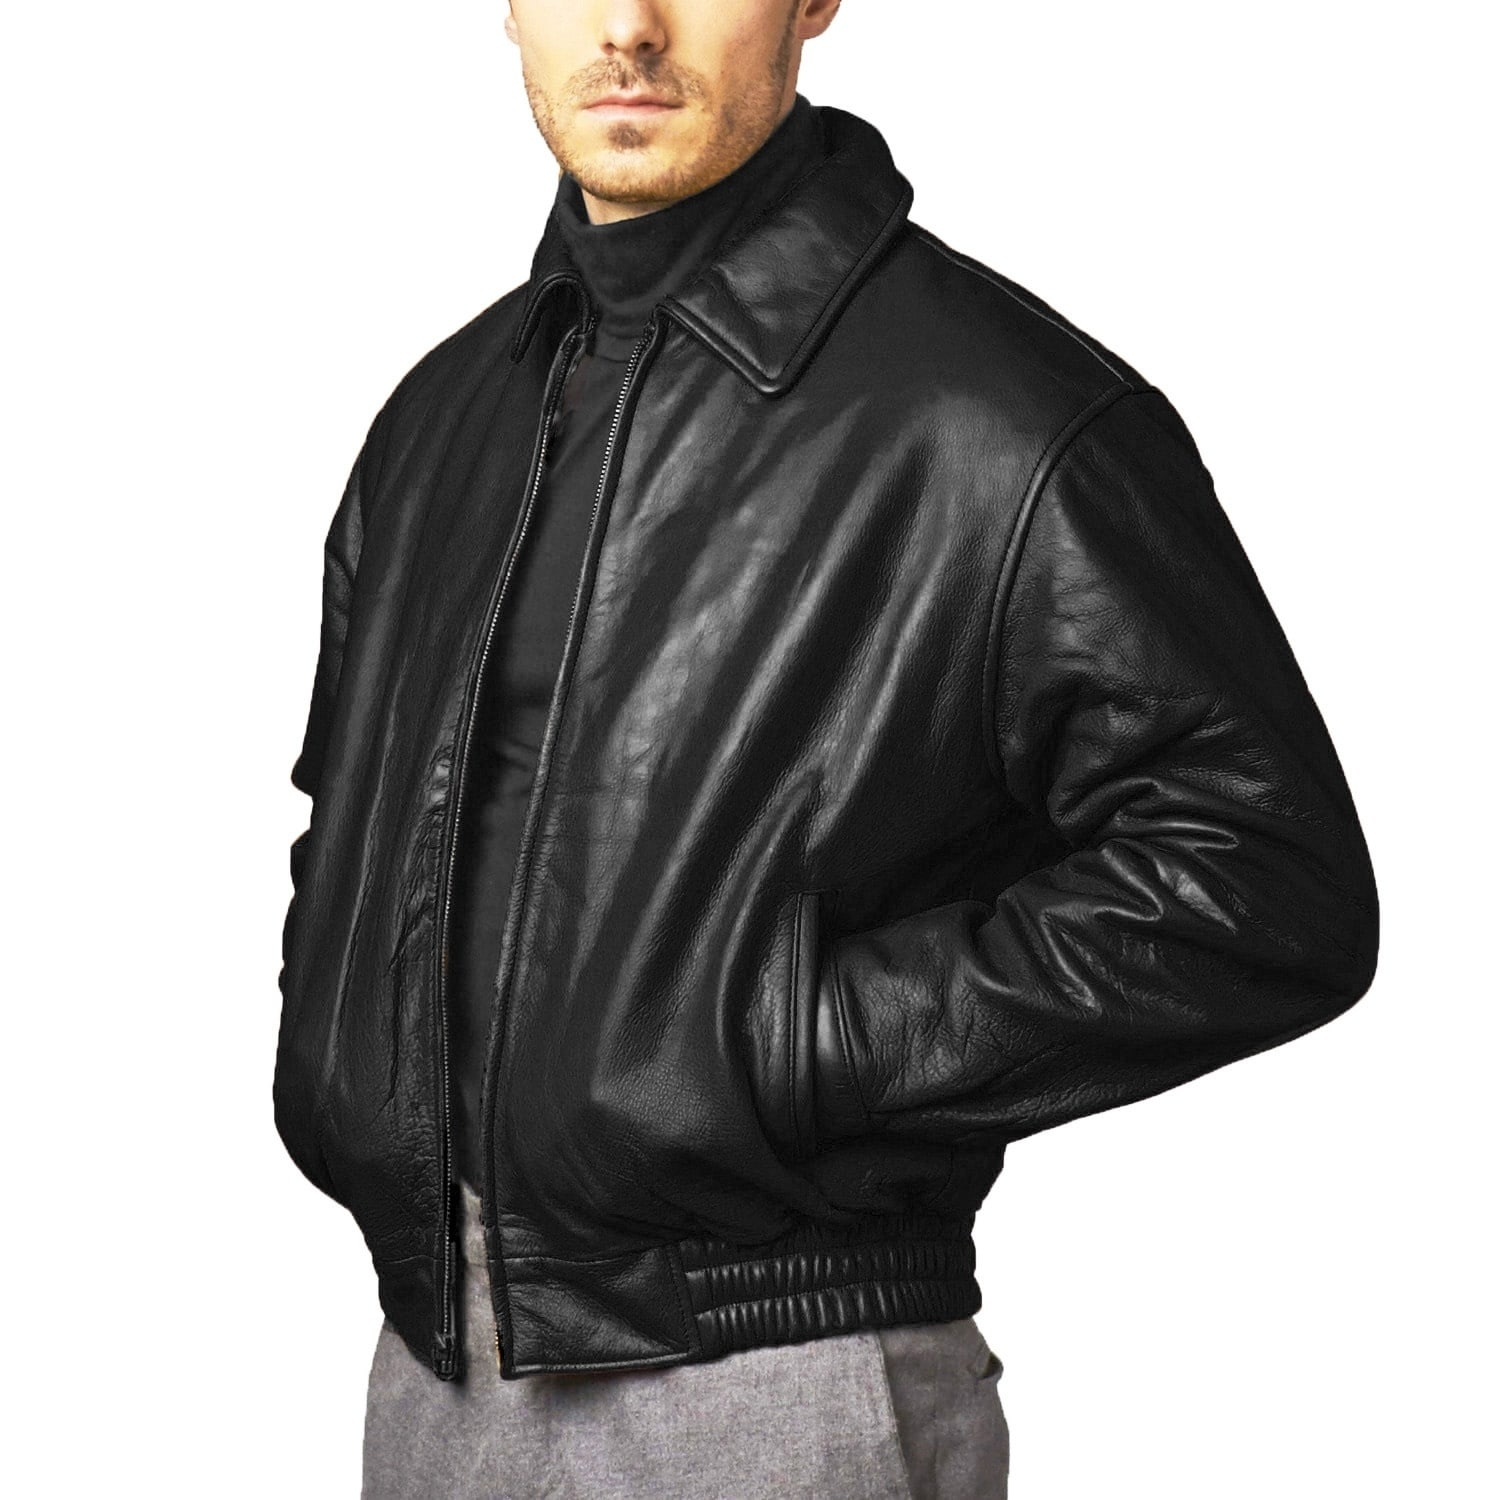 09c49922a99 Shop Black Lambskin Leather Bomber Jacket - Free Shipping Today ...